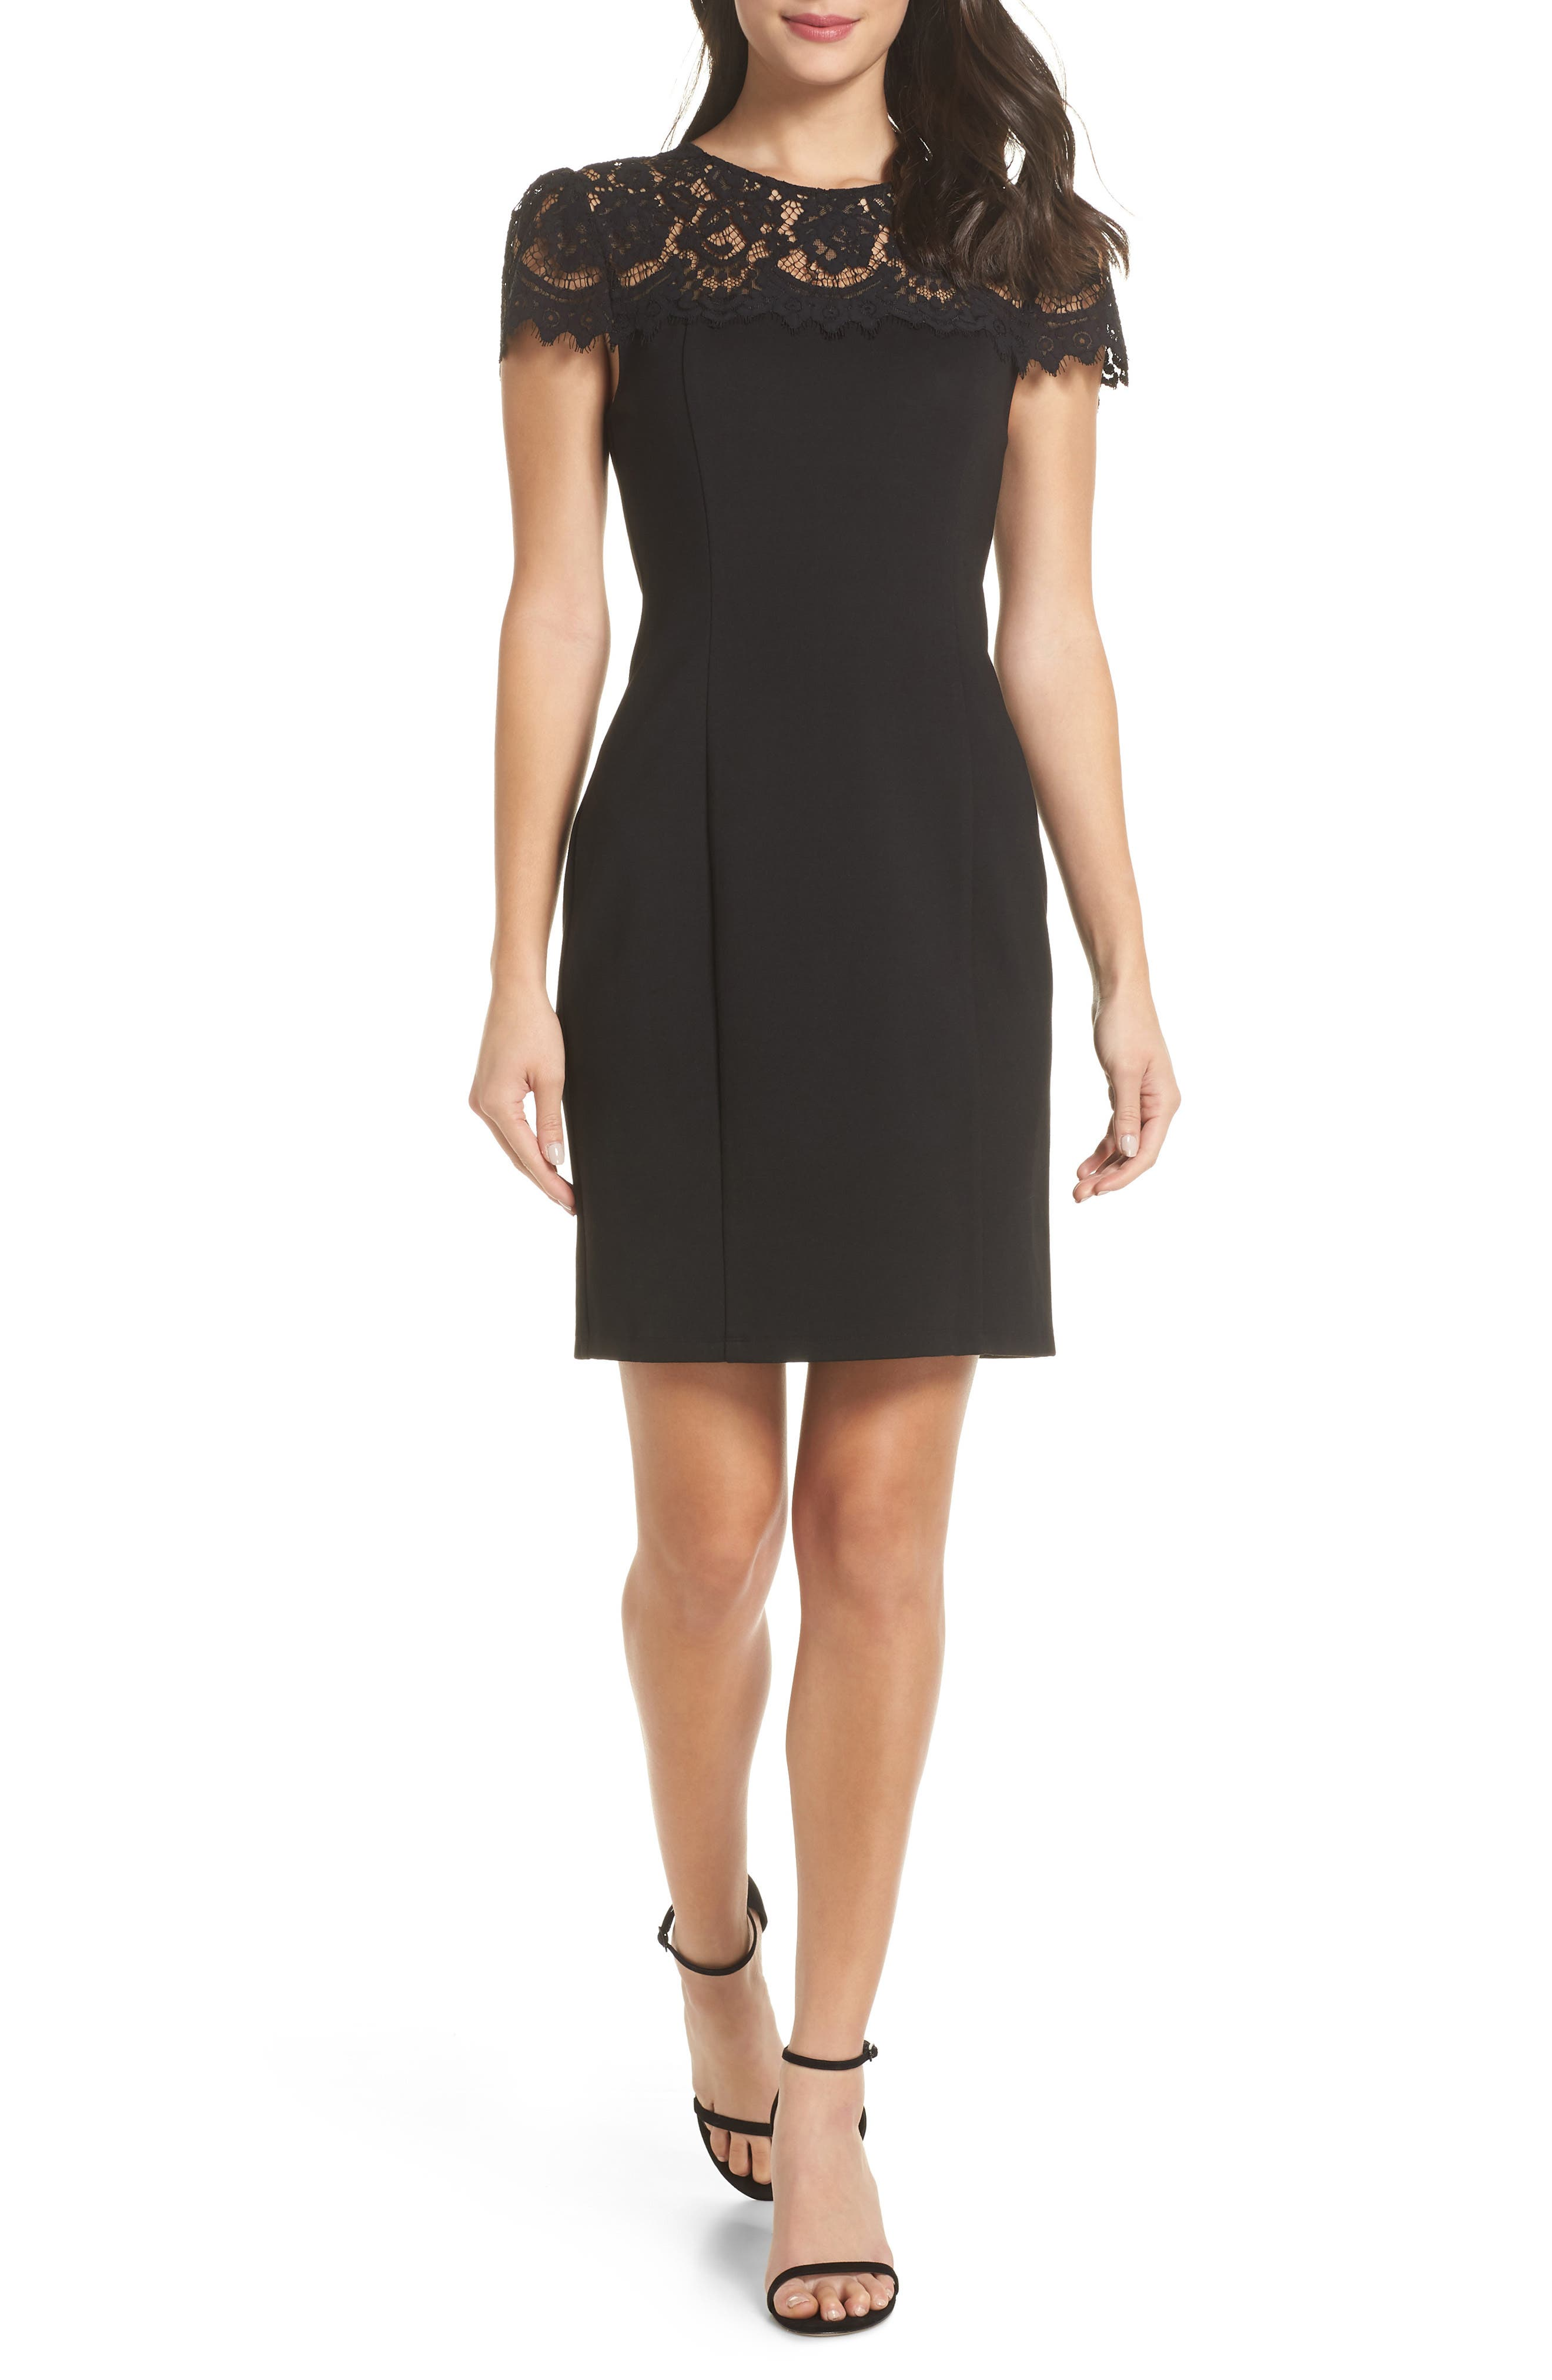 CHARLES HENRY Lace Yoke Sheath Dress in Black